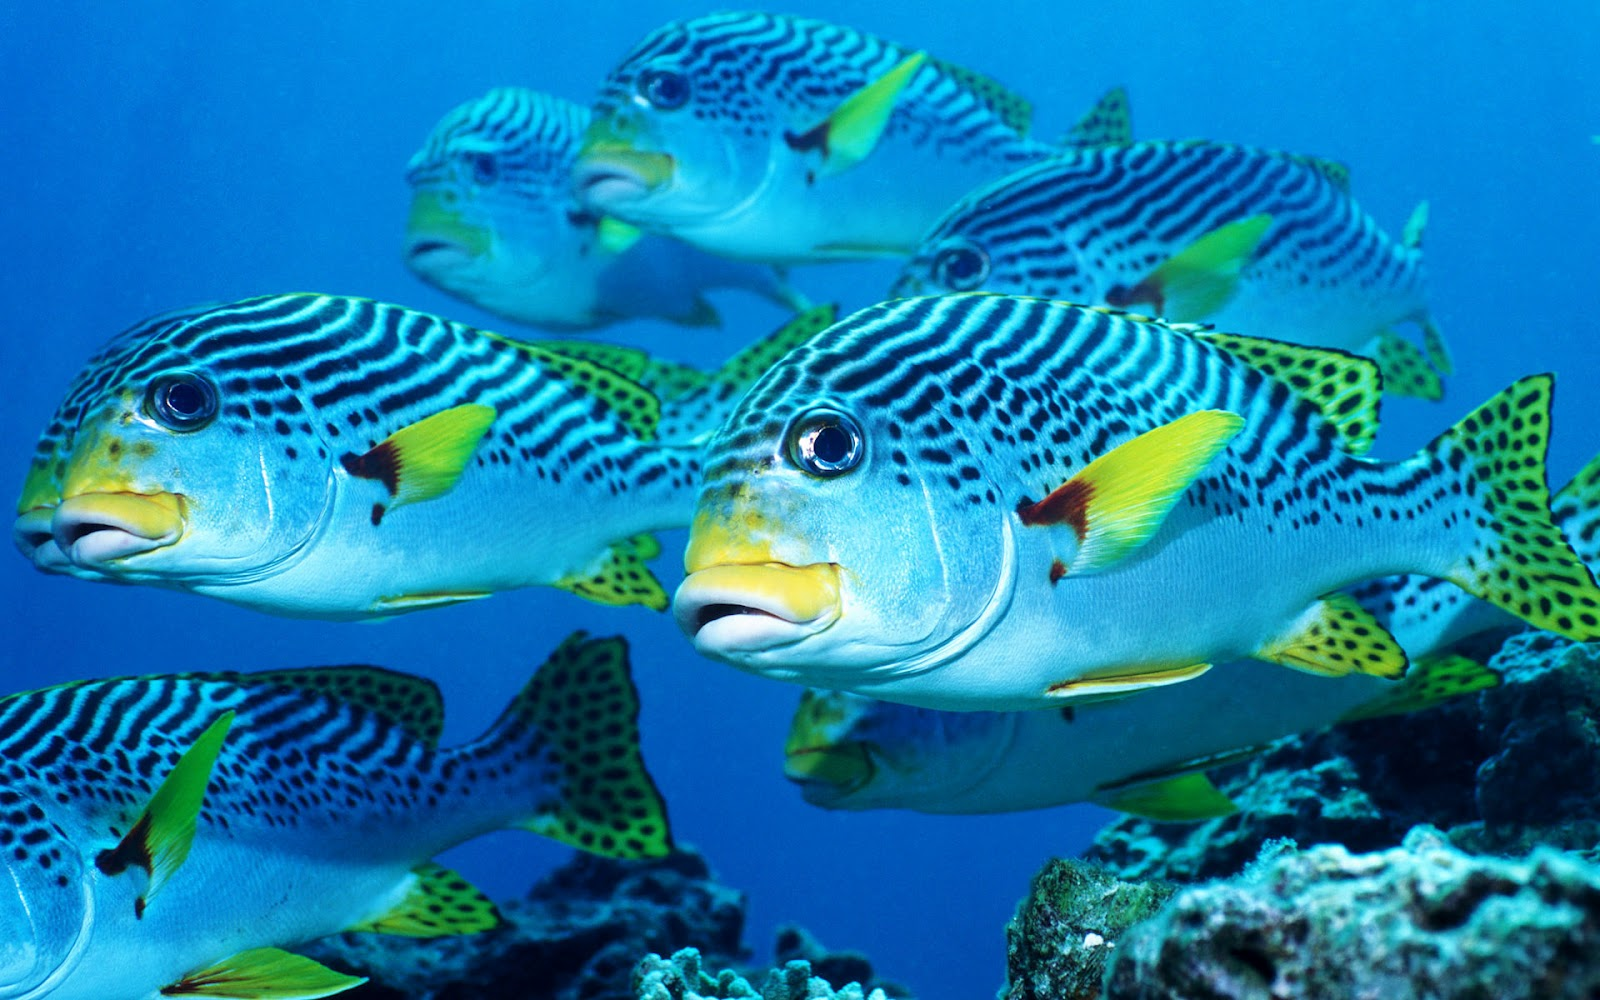 Ocean life wallpapers marine life on the seabed like fish plants 1600x1000